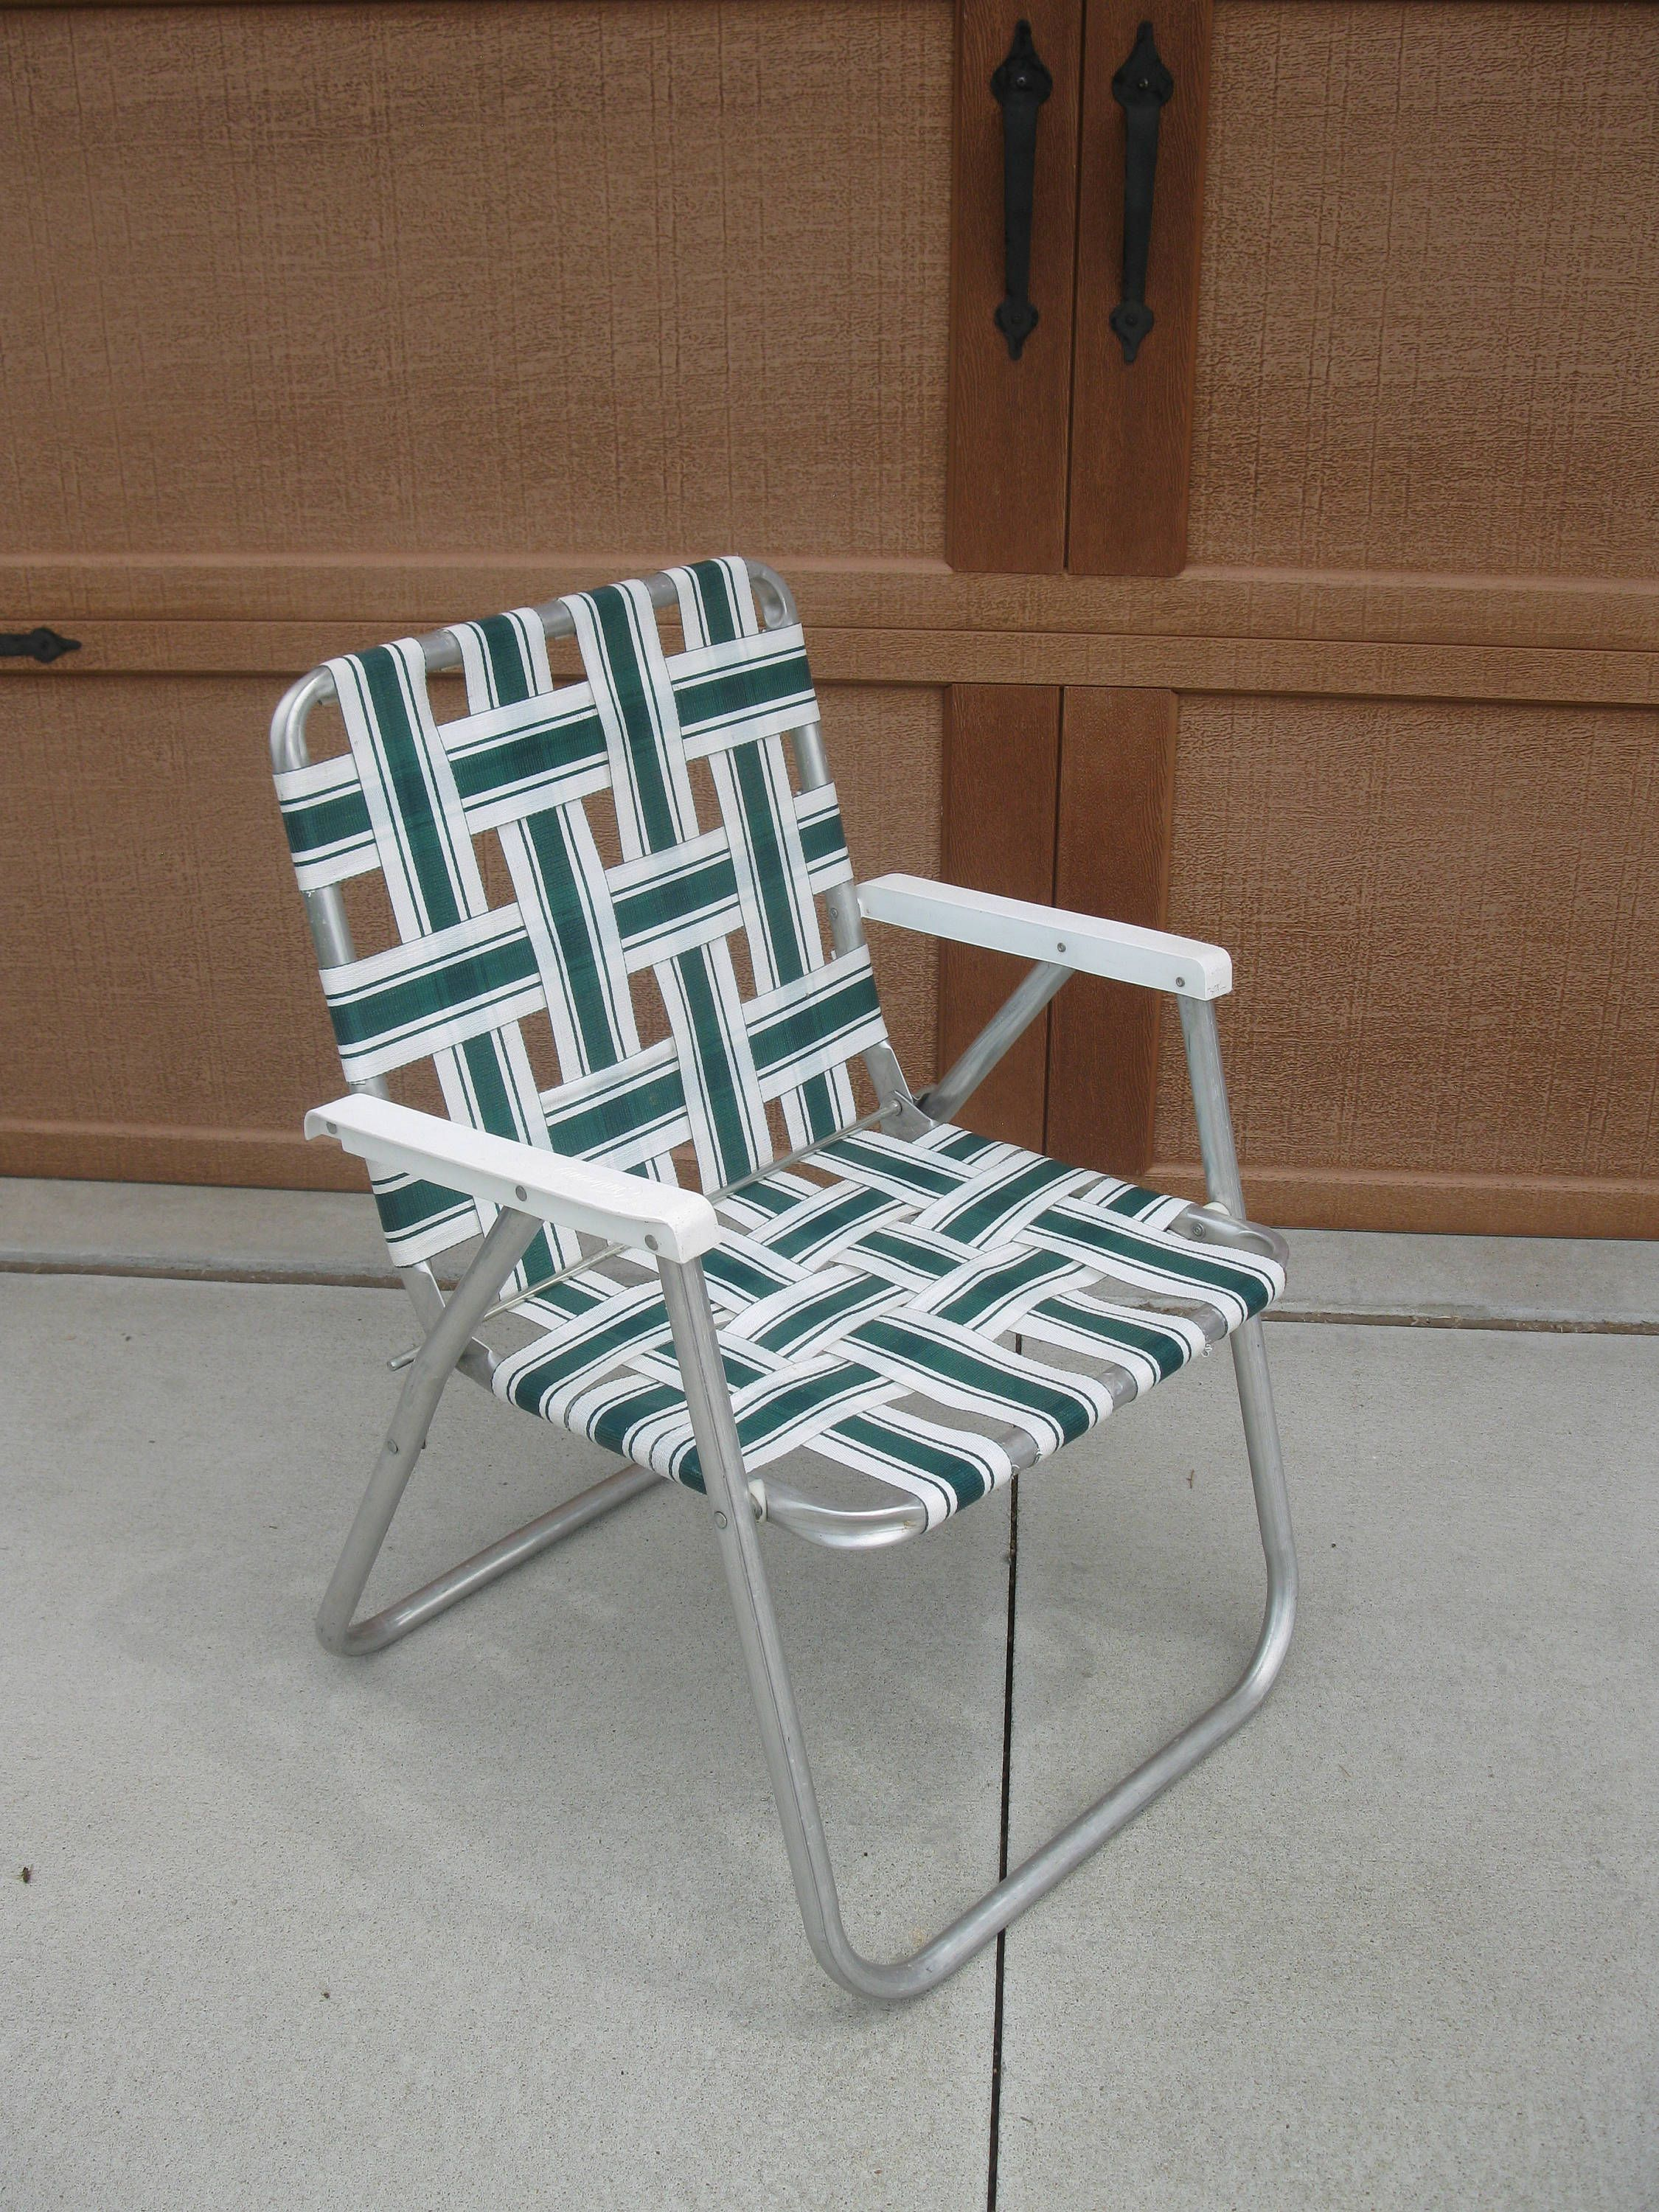 Vintage Lawn Chair  ADULT Size  SUNBEAM Green White  Nylon Web Lawn Chair   Patio Deck Furniture  Retro Cabin  Vintage Camper By Oakiesclaptrap On Etsy